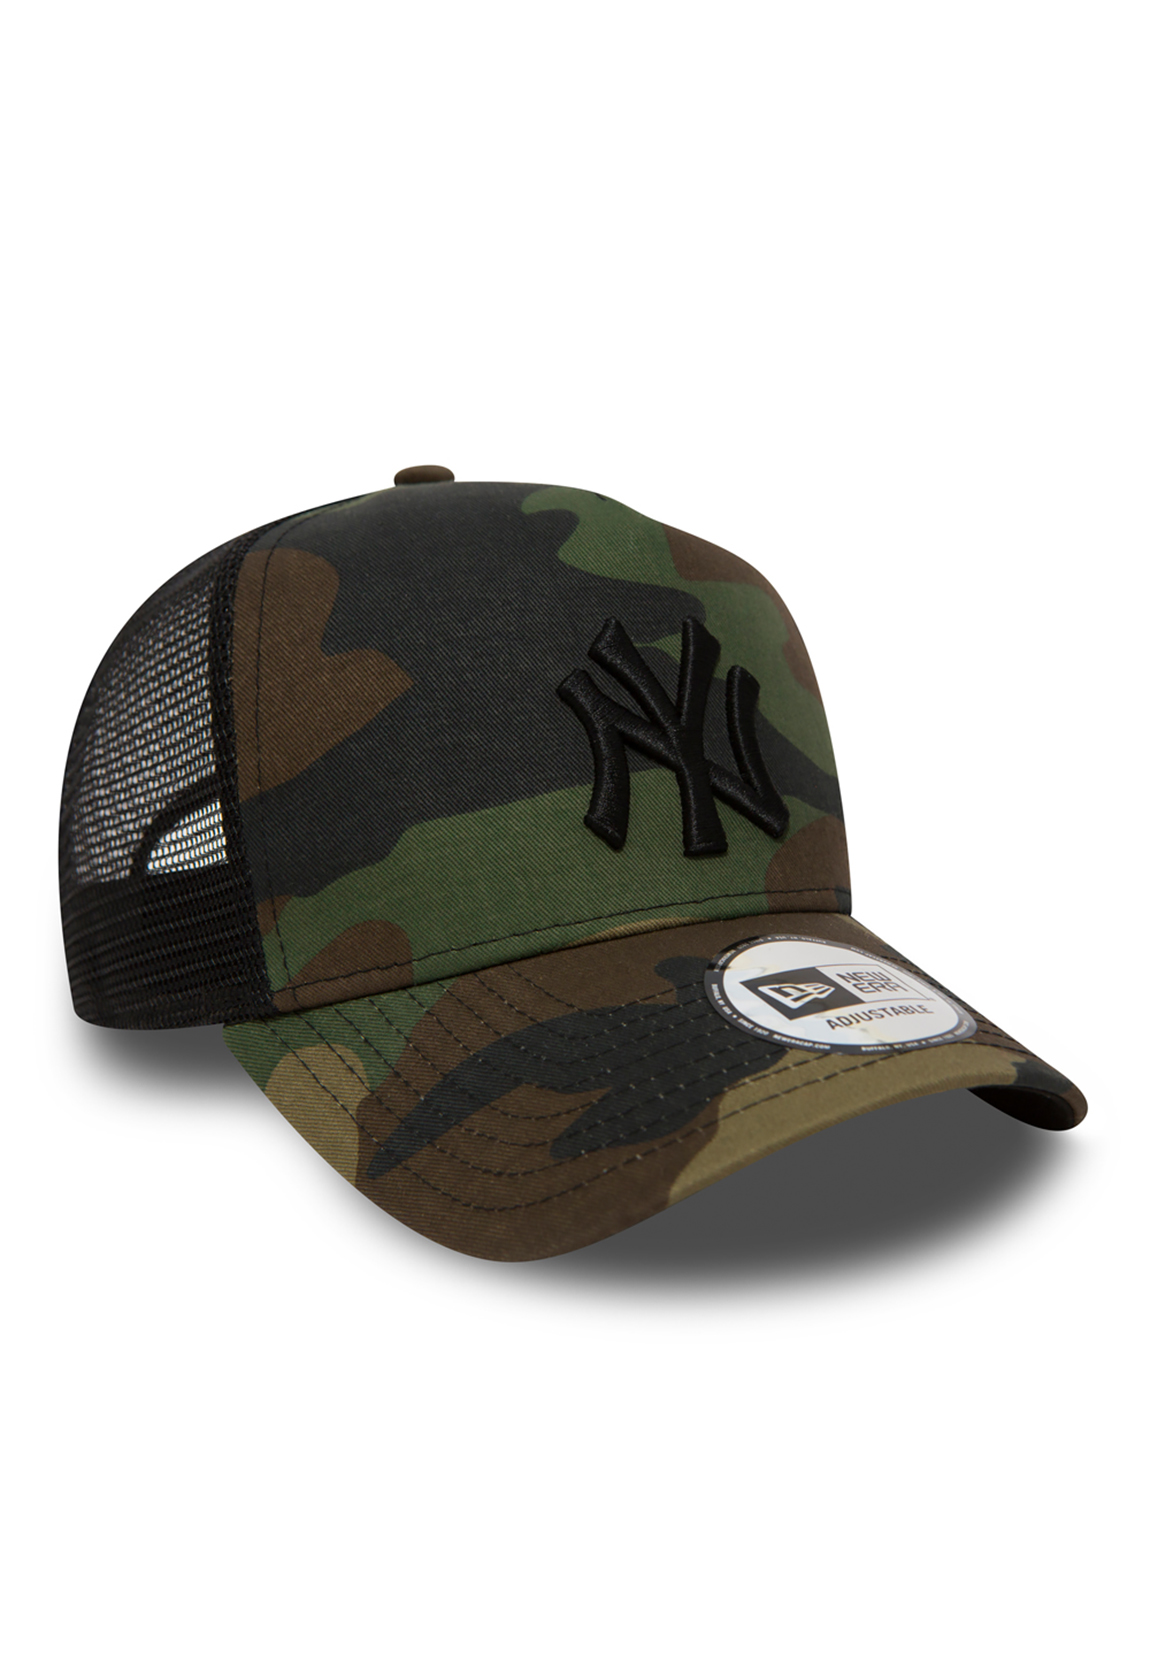 promo code 801e0 86d38 ... purchase new era clean trucker adjustable cap ny yankees camouflage  ebay 6582c 58563